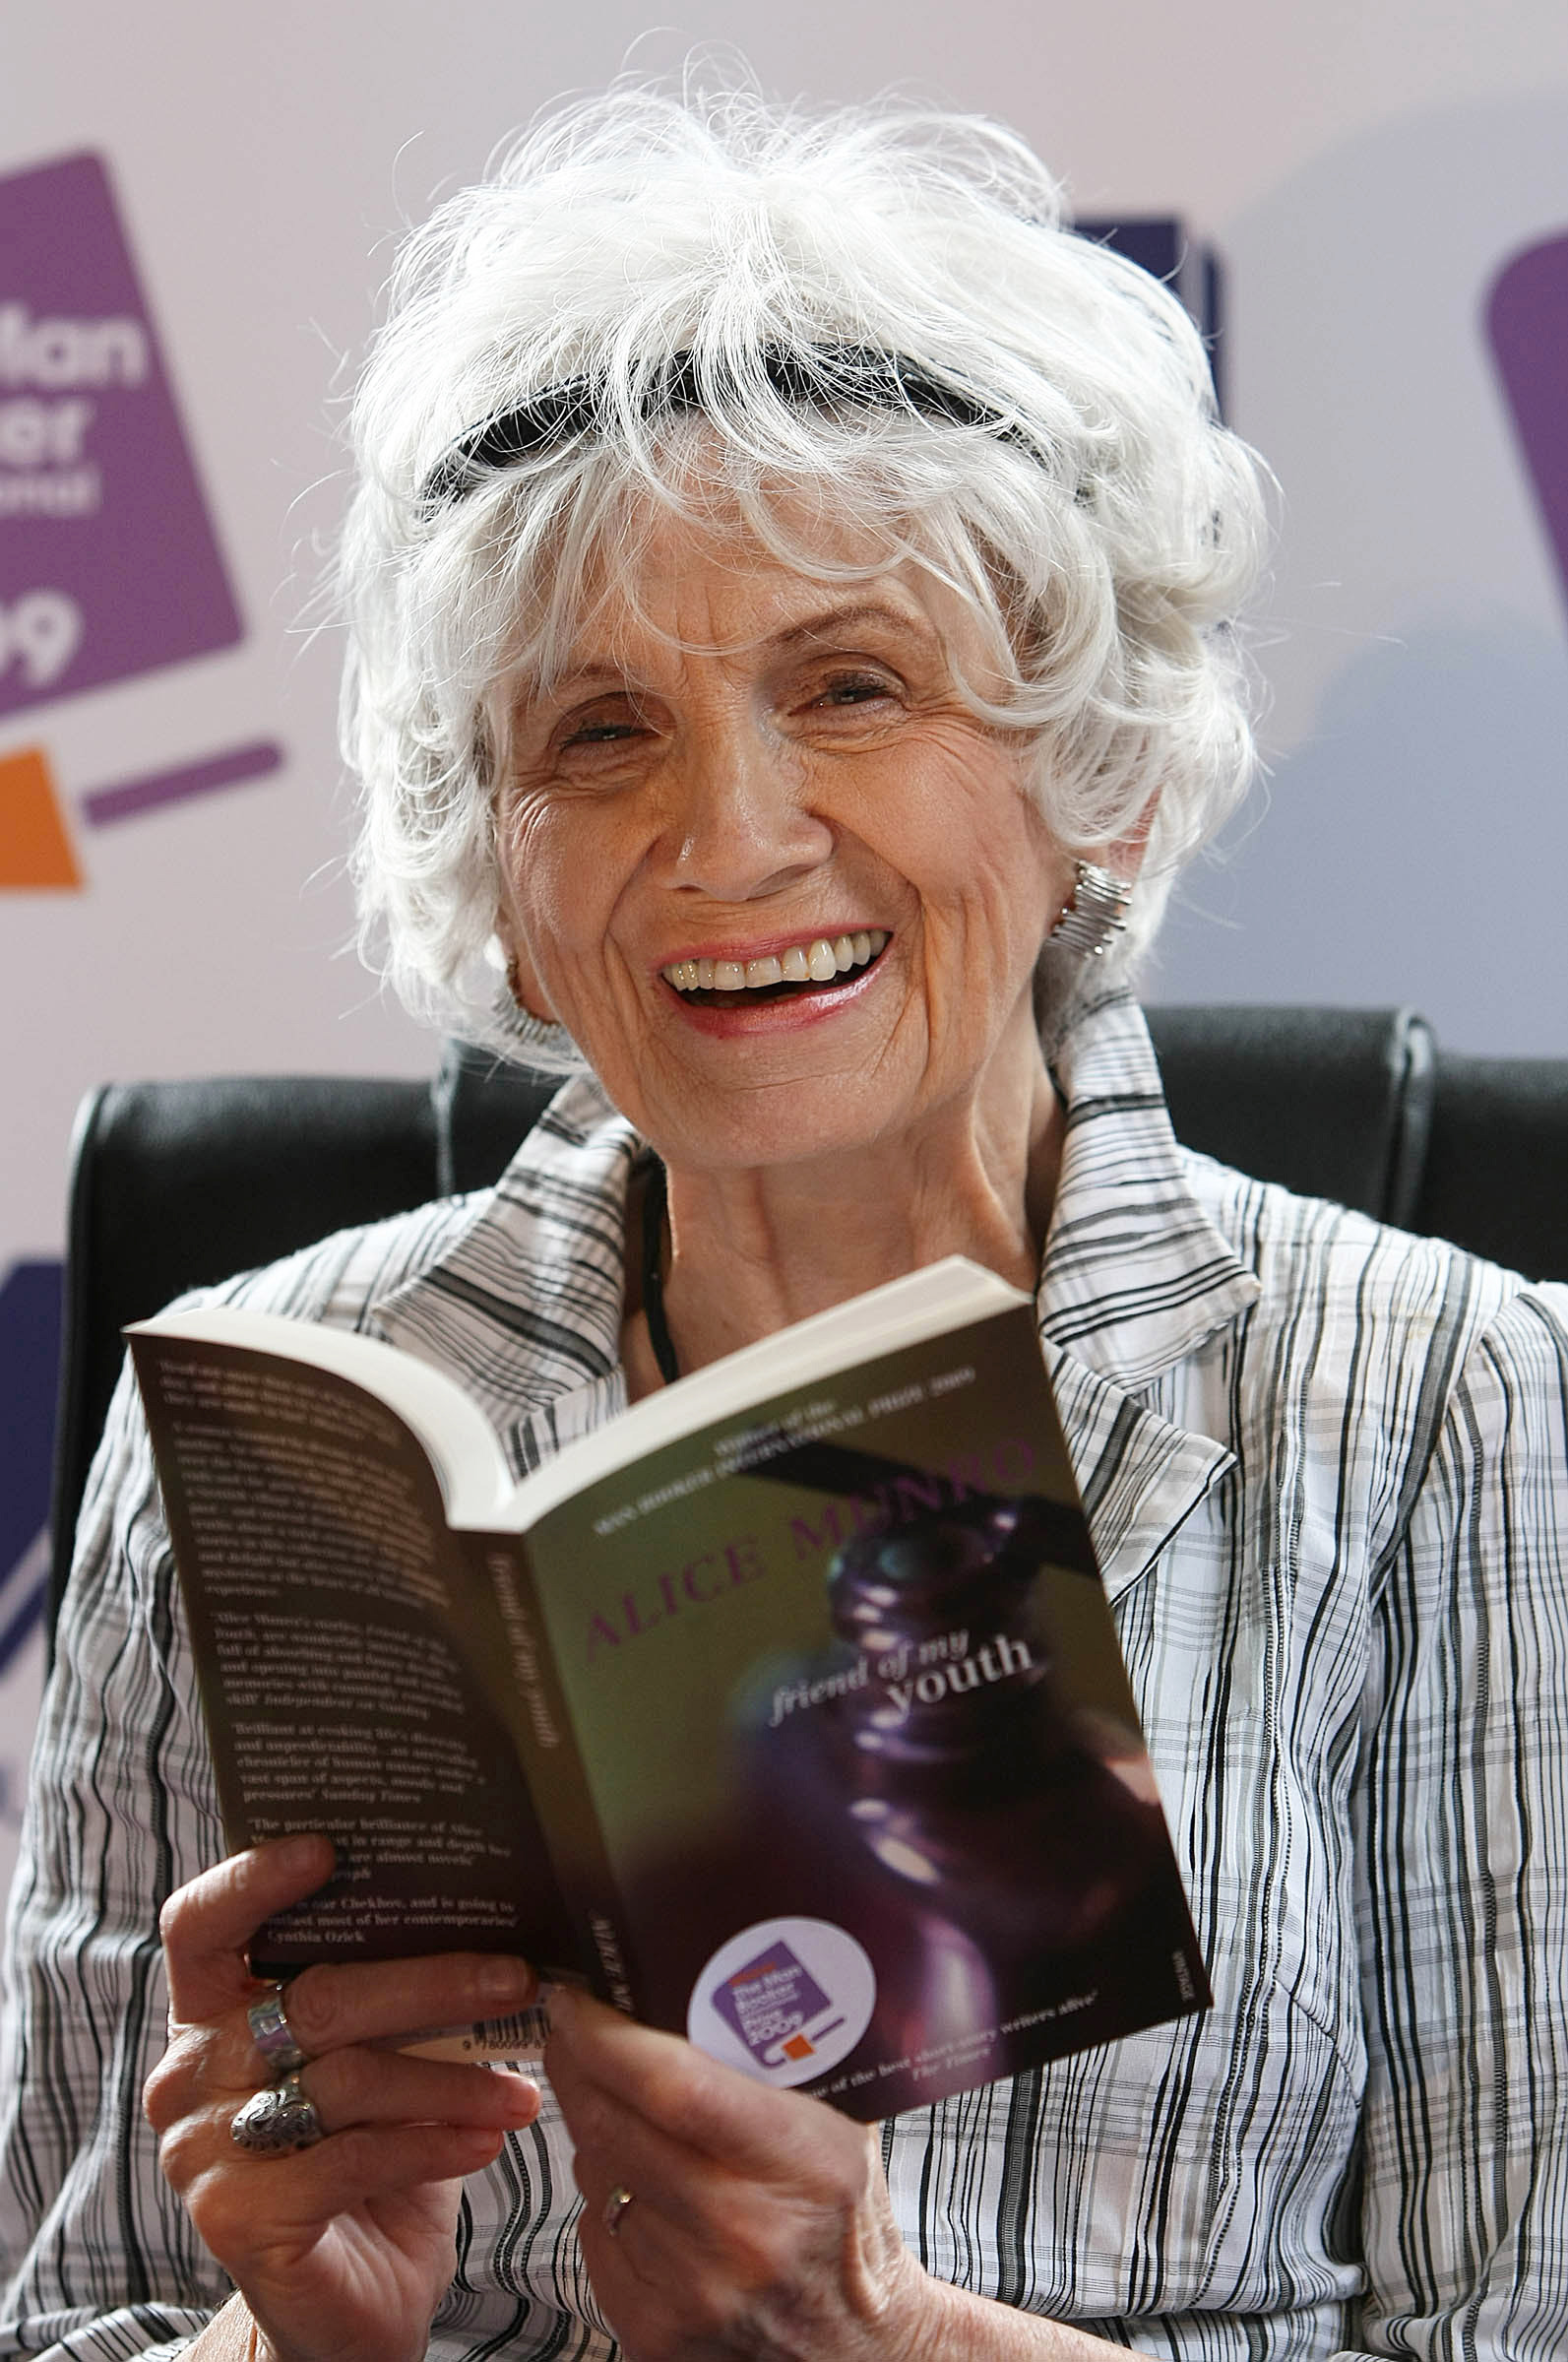 boys and girls alice munro Boys and girls by alice munro - summaryin boys and girls by alice munro, the narrator as a woman who is telling the first person point of view of when she was a girl.